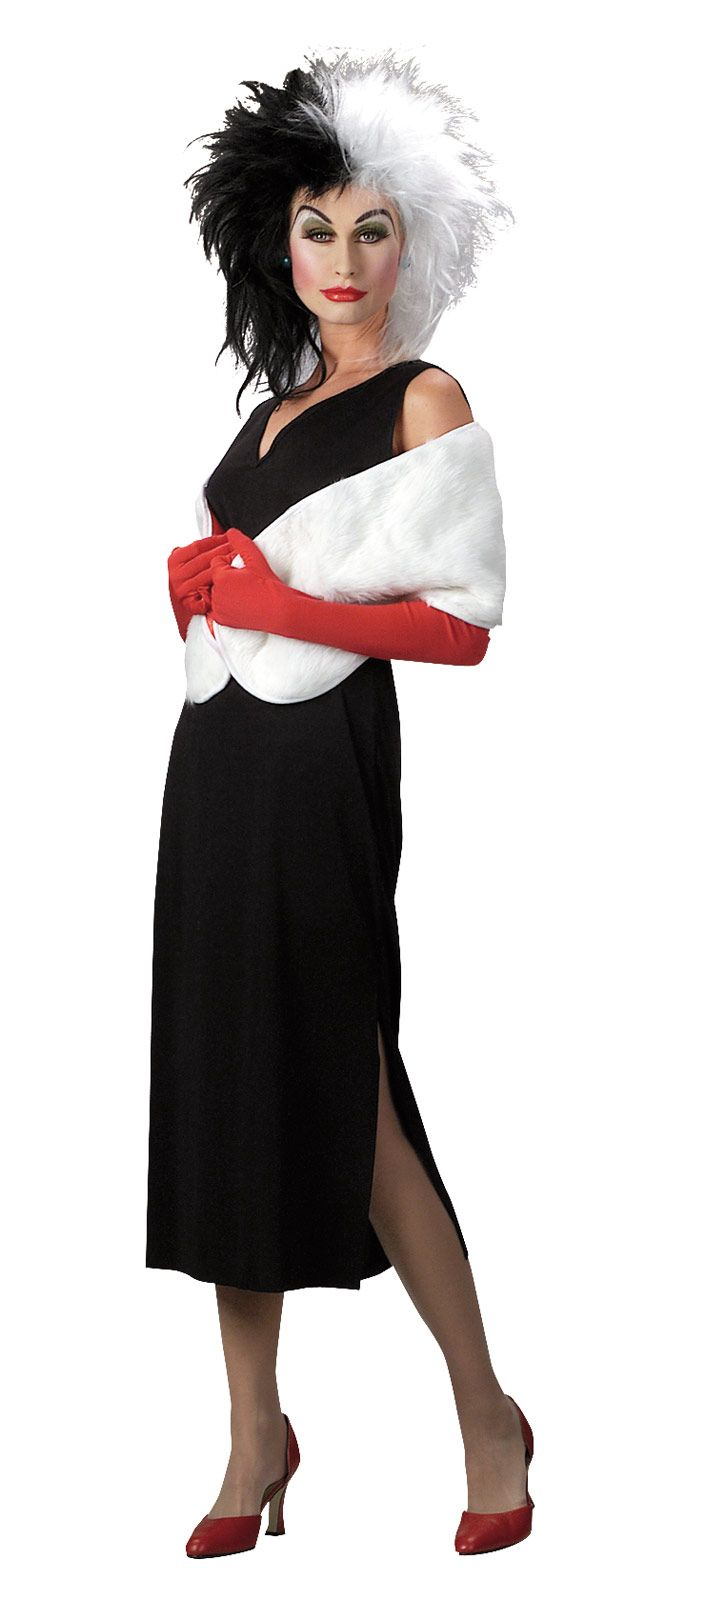 Disney's Cruella De Vil Sassy Ladies Halloween Costume - Calgary, Alberta. Disney's famous 101 Dalmatians villain, Cruella De Vil,  is the epitome of stylish cruelty. This makes her a fun, sassy character to dress up as for Halloween.  This costume brings out the character's sassy, yet devilish, fashion style. The black and white theme (especially the chaotic, dual colored wig) is a reminder of both her high fashion and unstable personality.